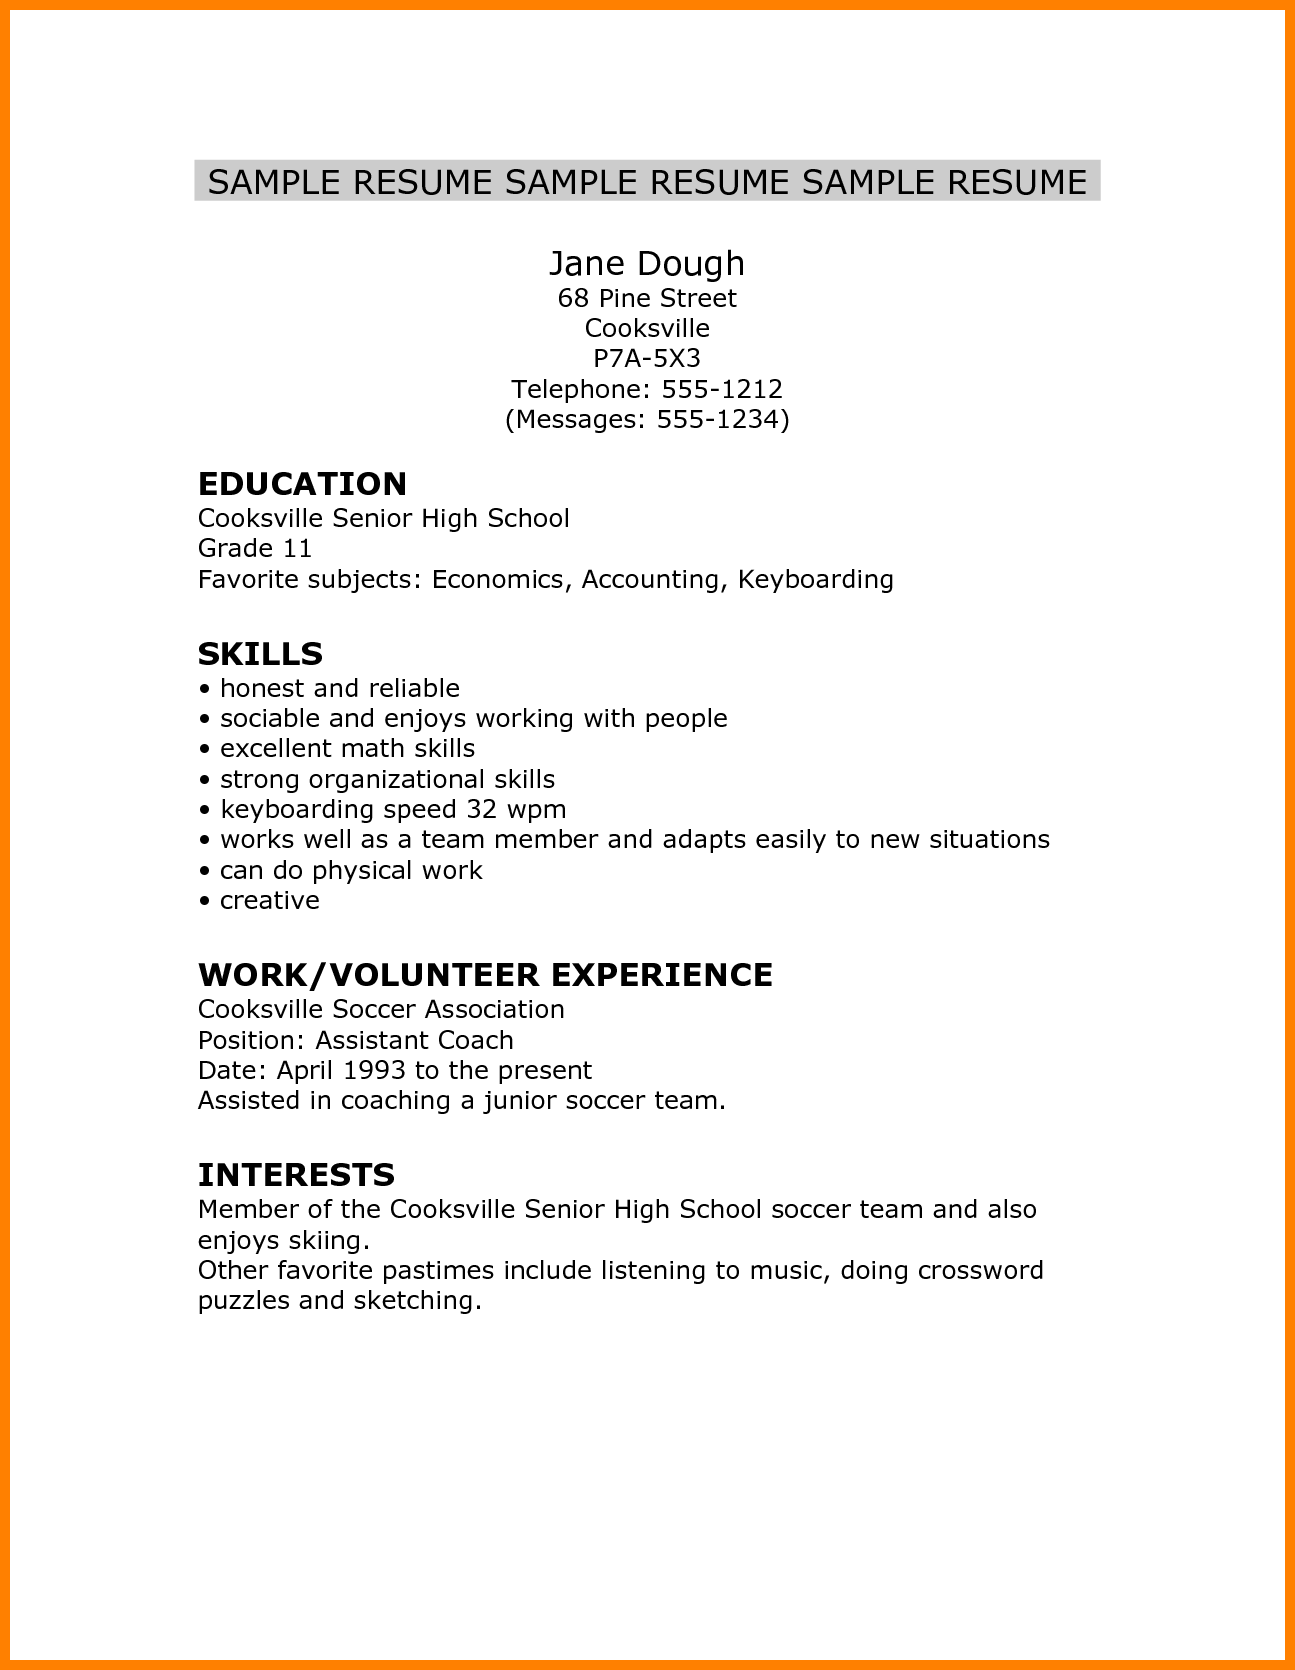 5 Cv Template For High School Student Theorynpractice Wonderful 5 Cv Template For High School High School Resume High School Resume Template Student Resume